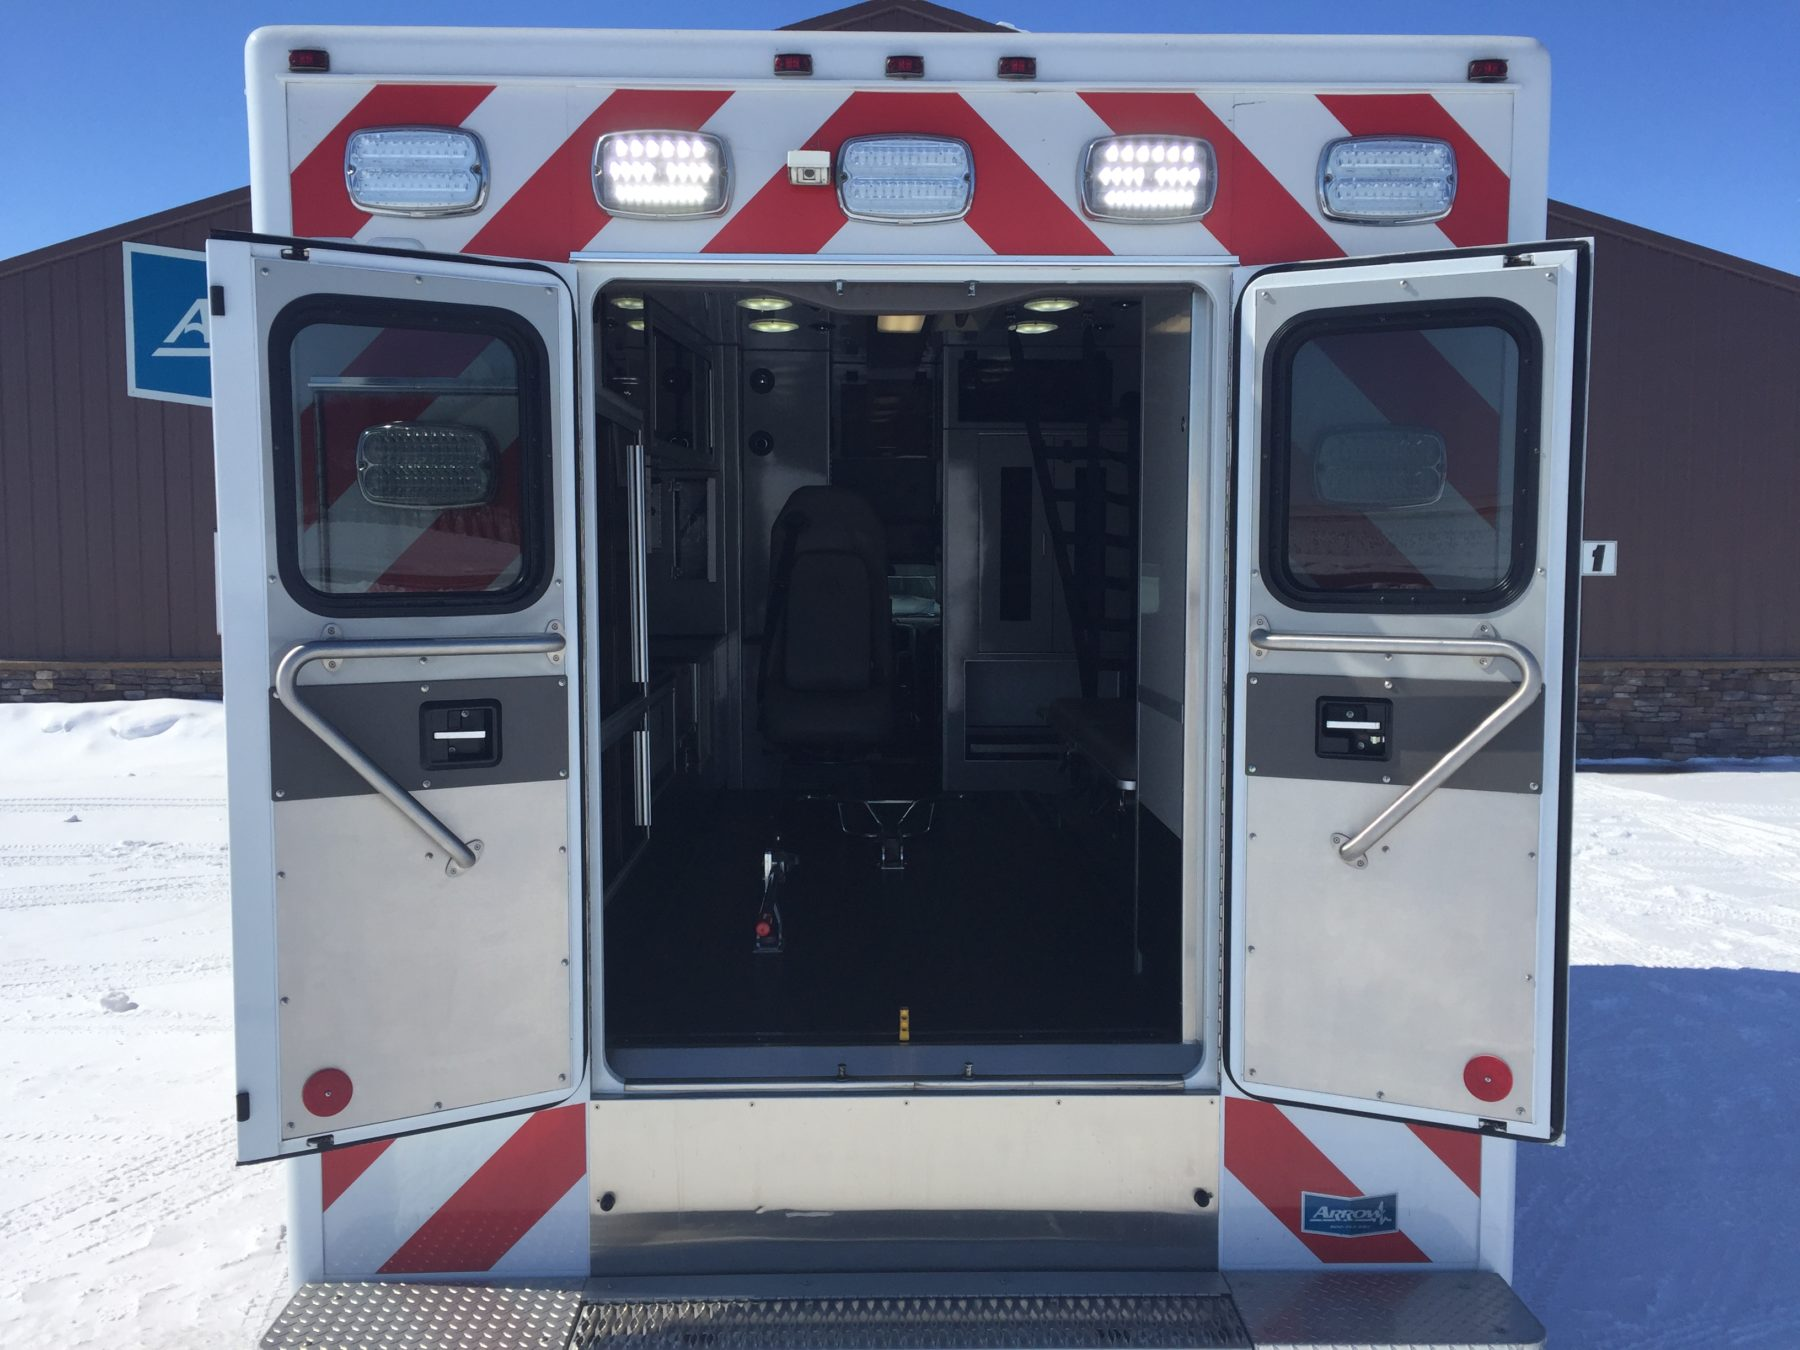 2015 Dodge 4500 4x4 Heavy Duty Ambulance For Sale – Picture 9